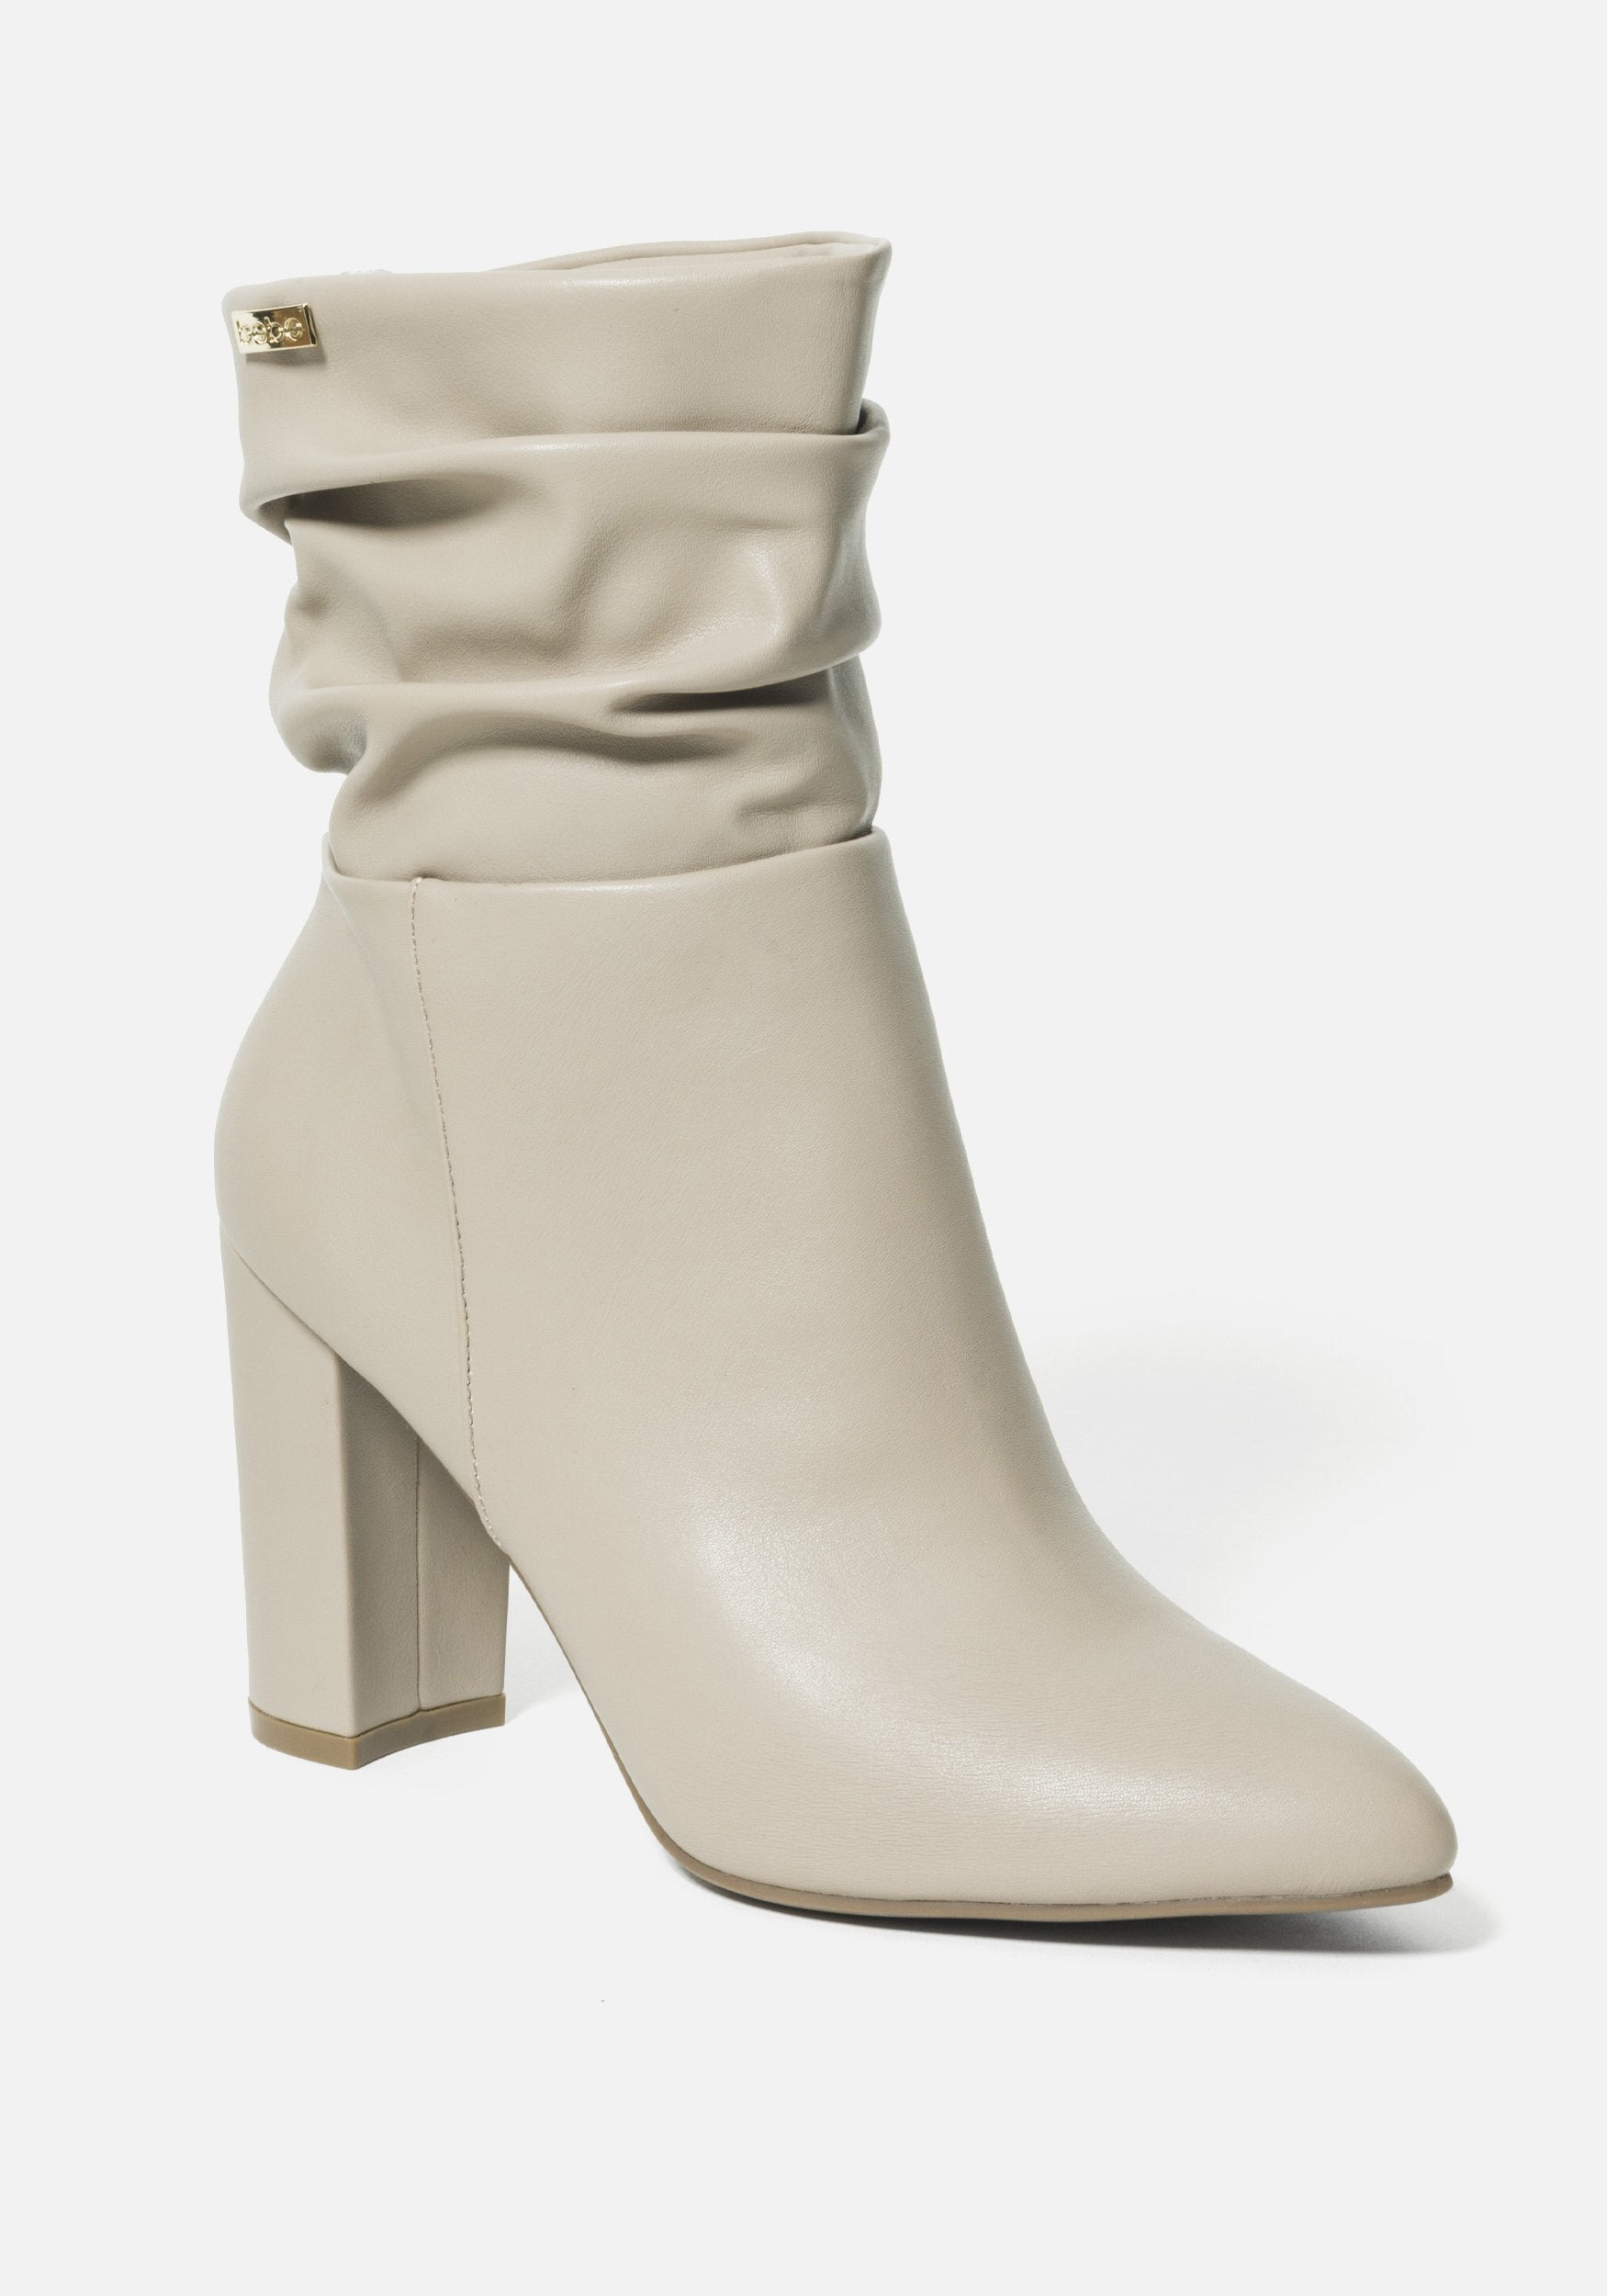 Bebe Women's Savita Slouch Booties, Size 6 in TAUPE Synthetic